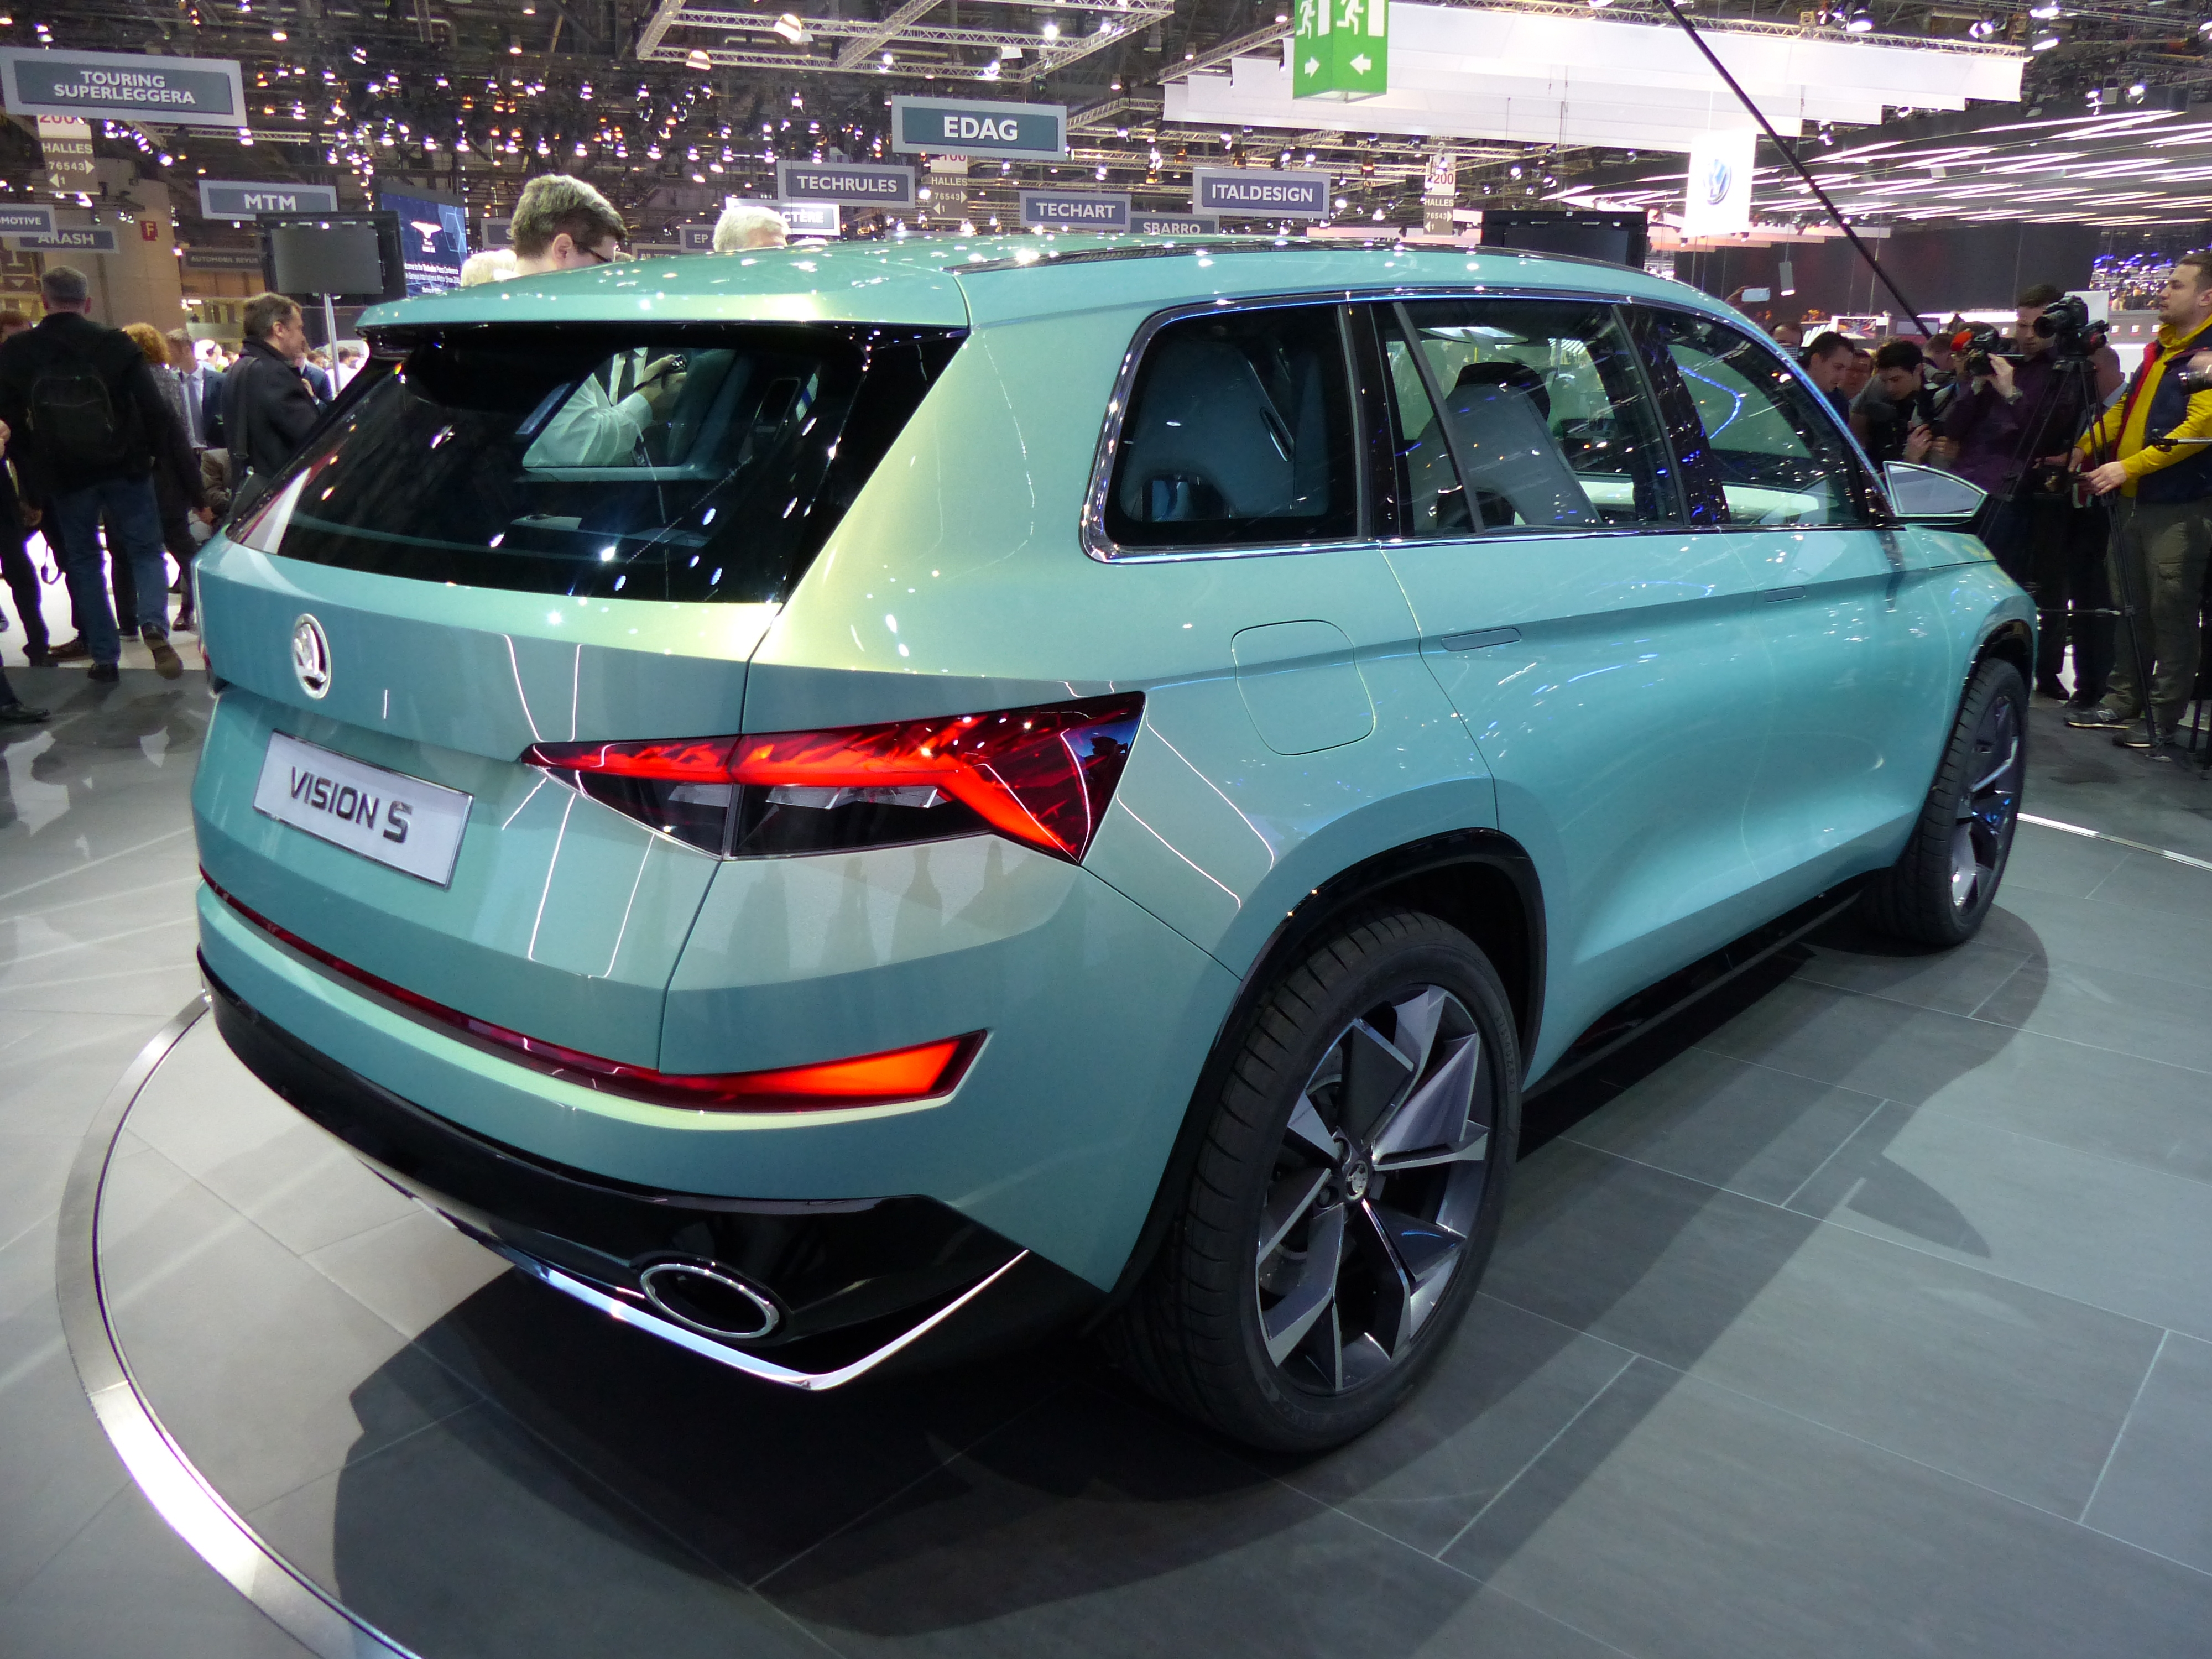 skoda visions concept suv cubiste en direct du salon de gen ve. Black Bedroom Furniture Sets. Home Design Ideas